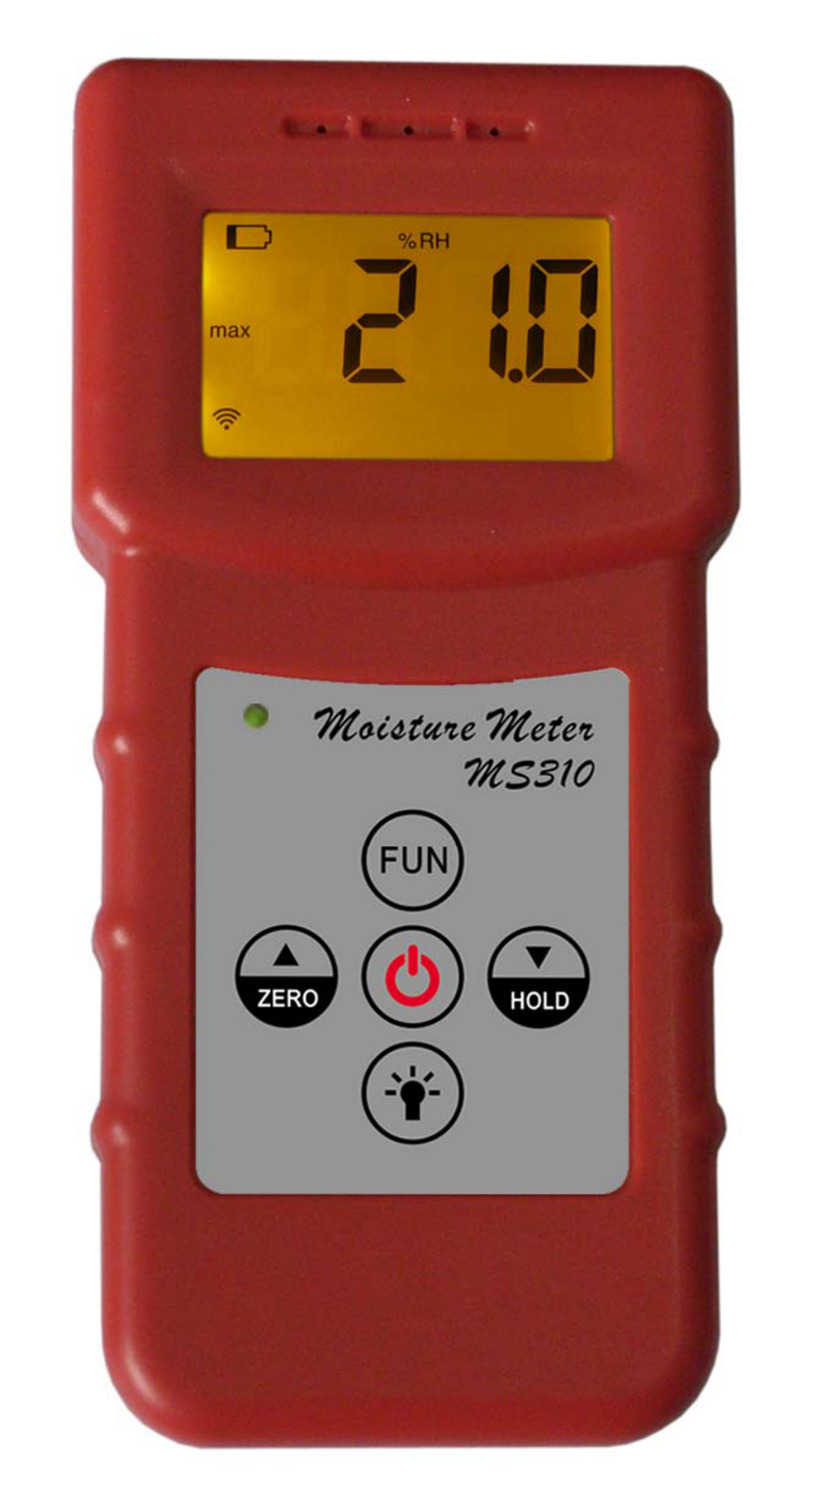 Inductive moisture meter MS310 FOR woodwork,paper making,flakeboard,furniture,building,timber traders concrete wood.. mc 7806 digital moisture analyzer price pin type moisture meter for tobacco cotton paper building soil